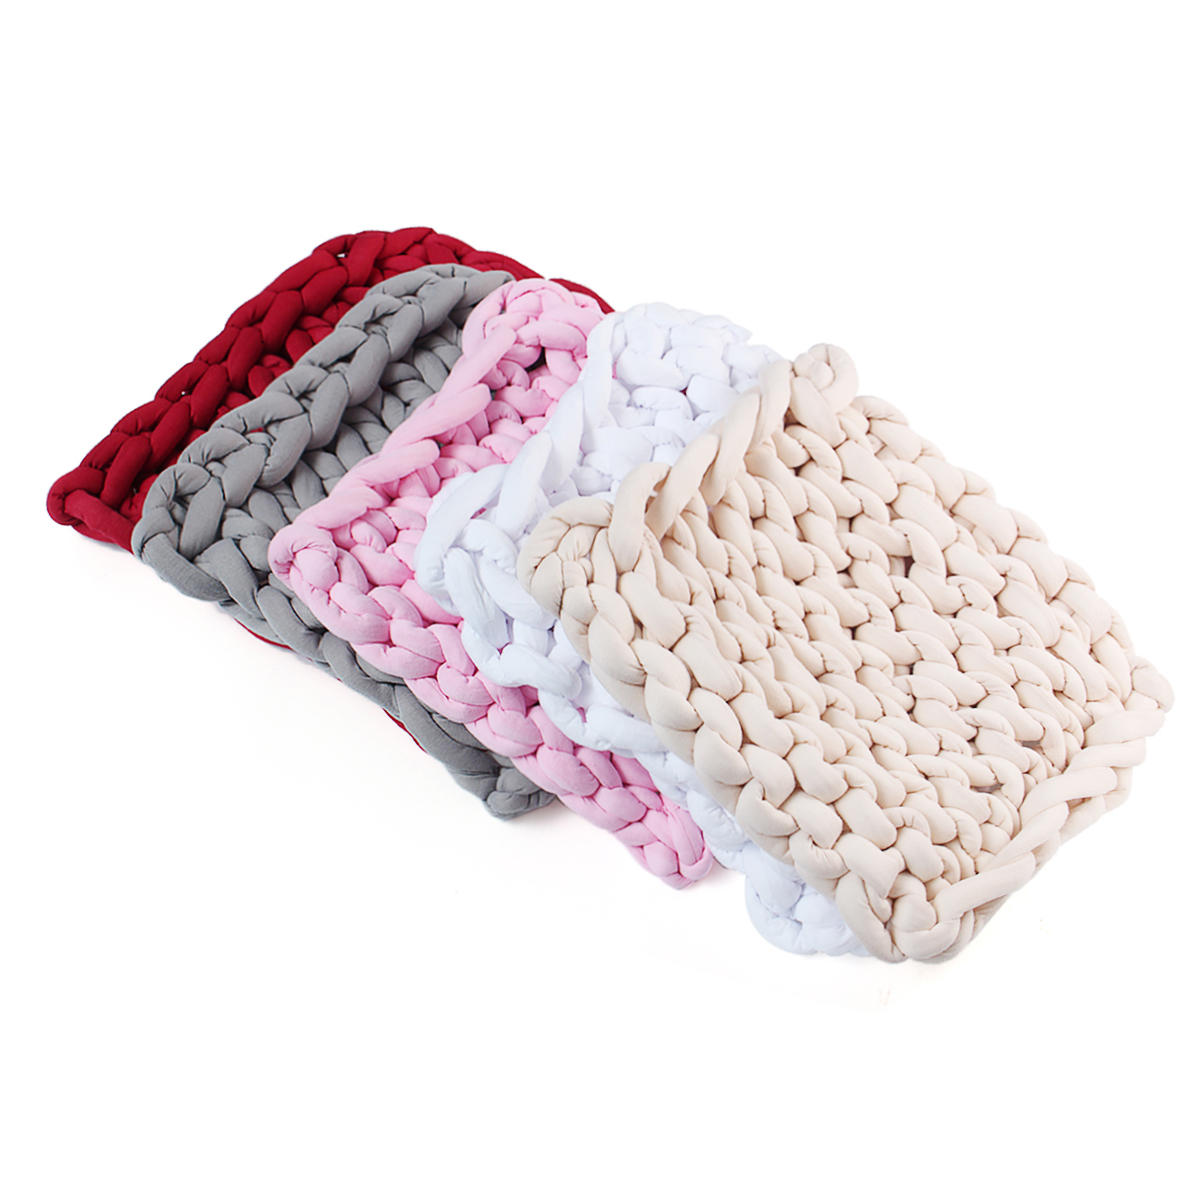 50 x 50cm Handmade Knitted Blanket Cotton Soft Washable Lint free Throw Multicolored Thick Thread Blankets - 2